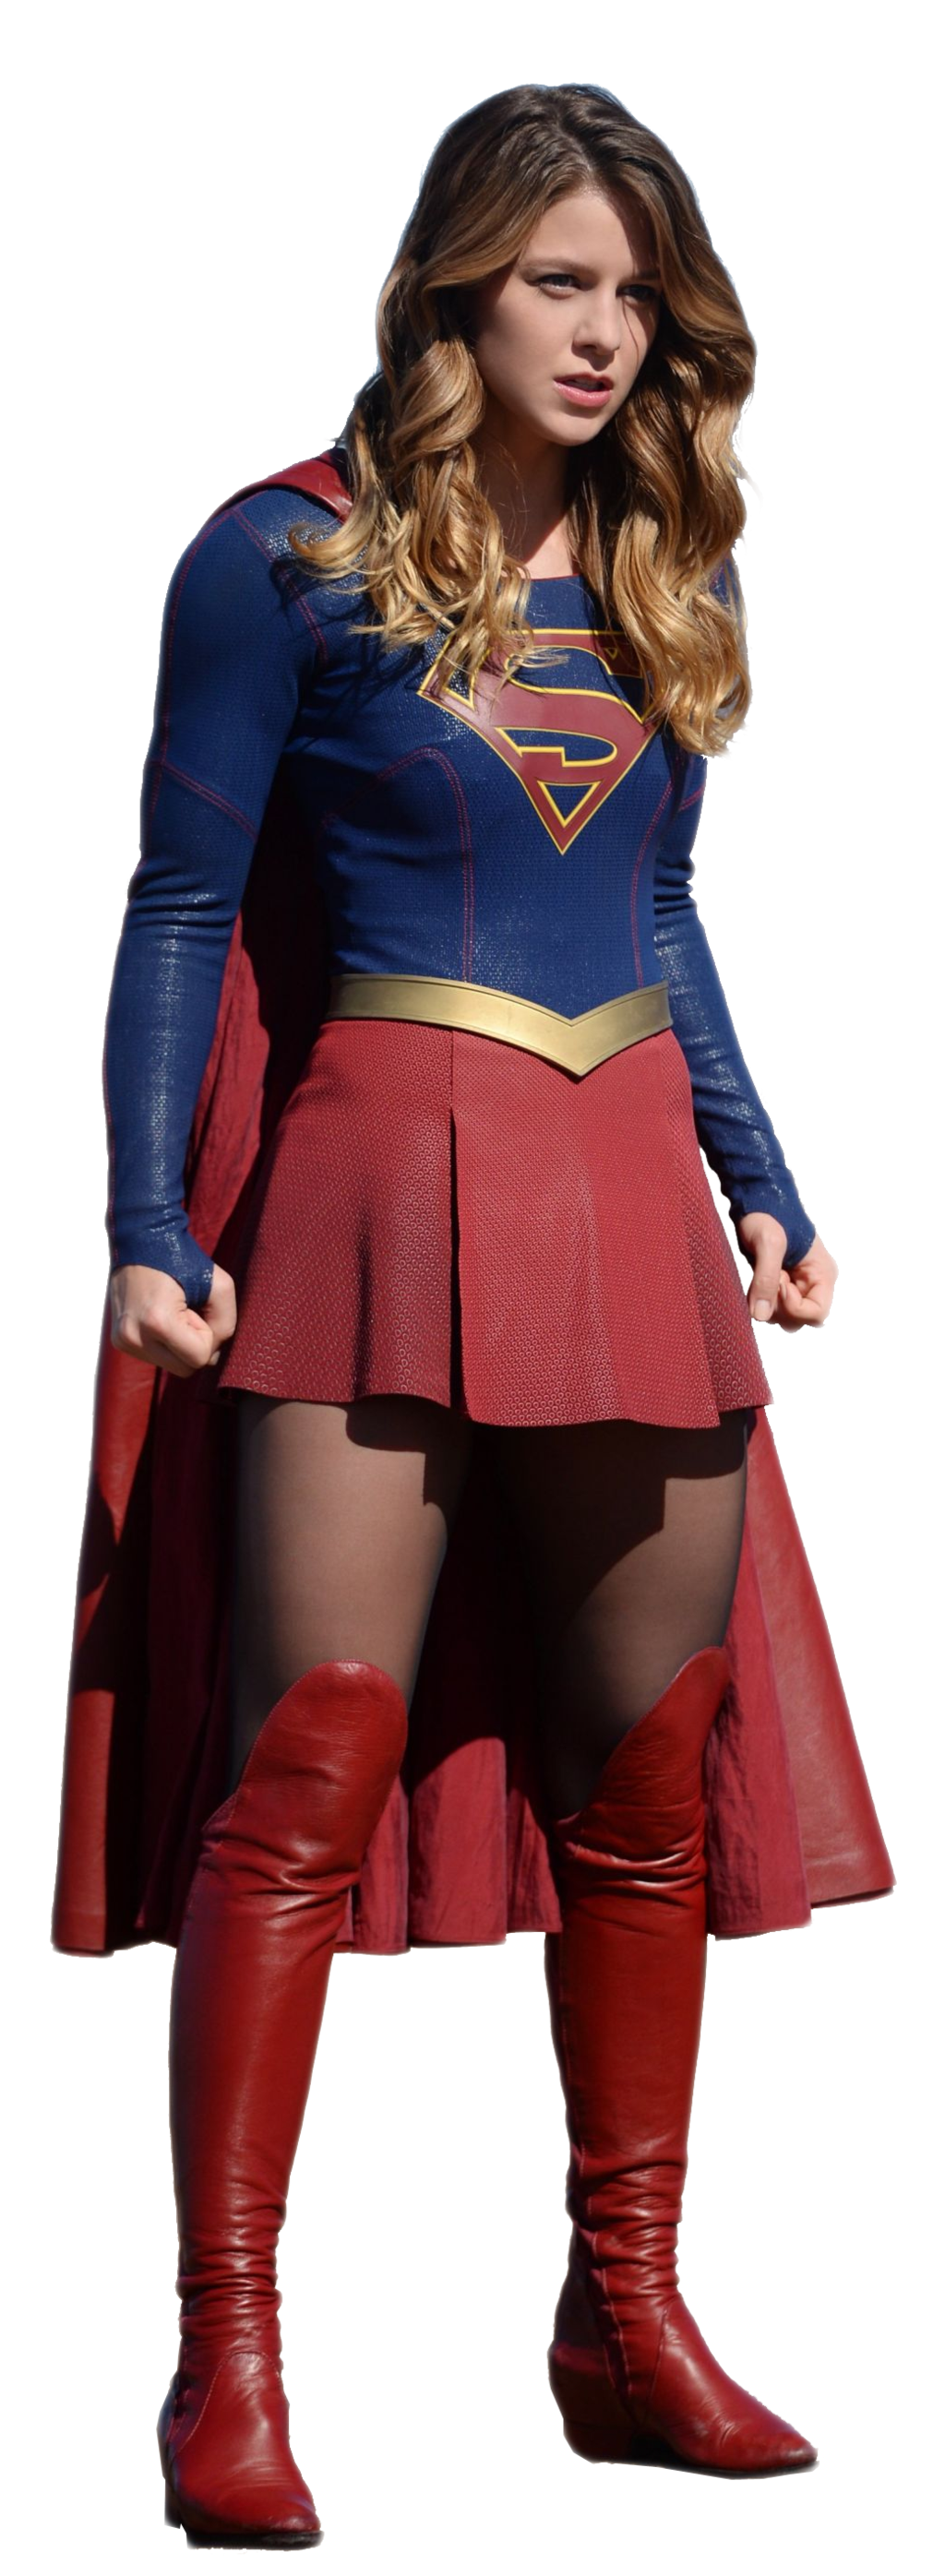 Supergirl art png. By buffy ville on